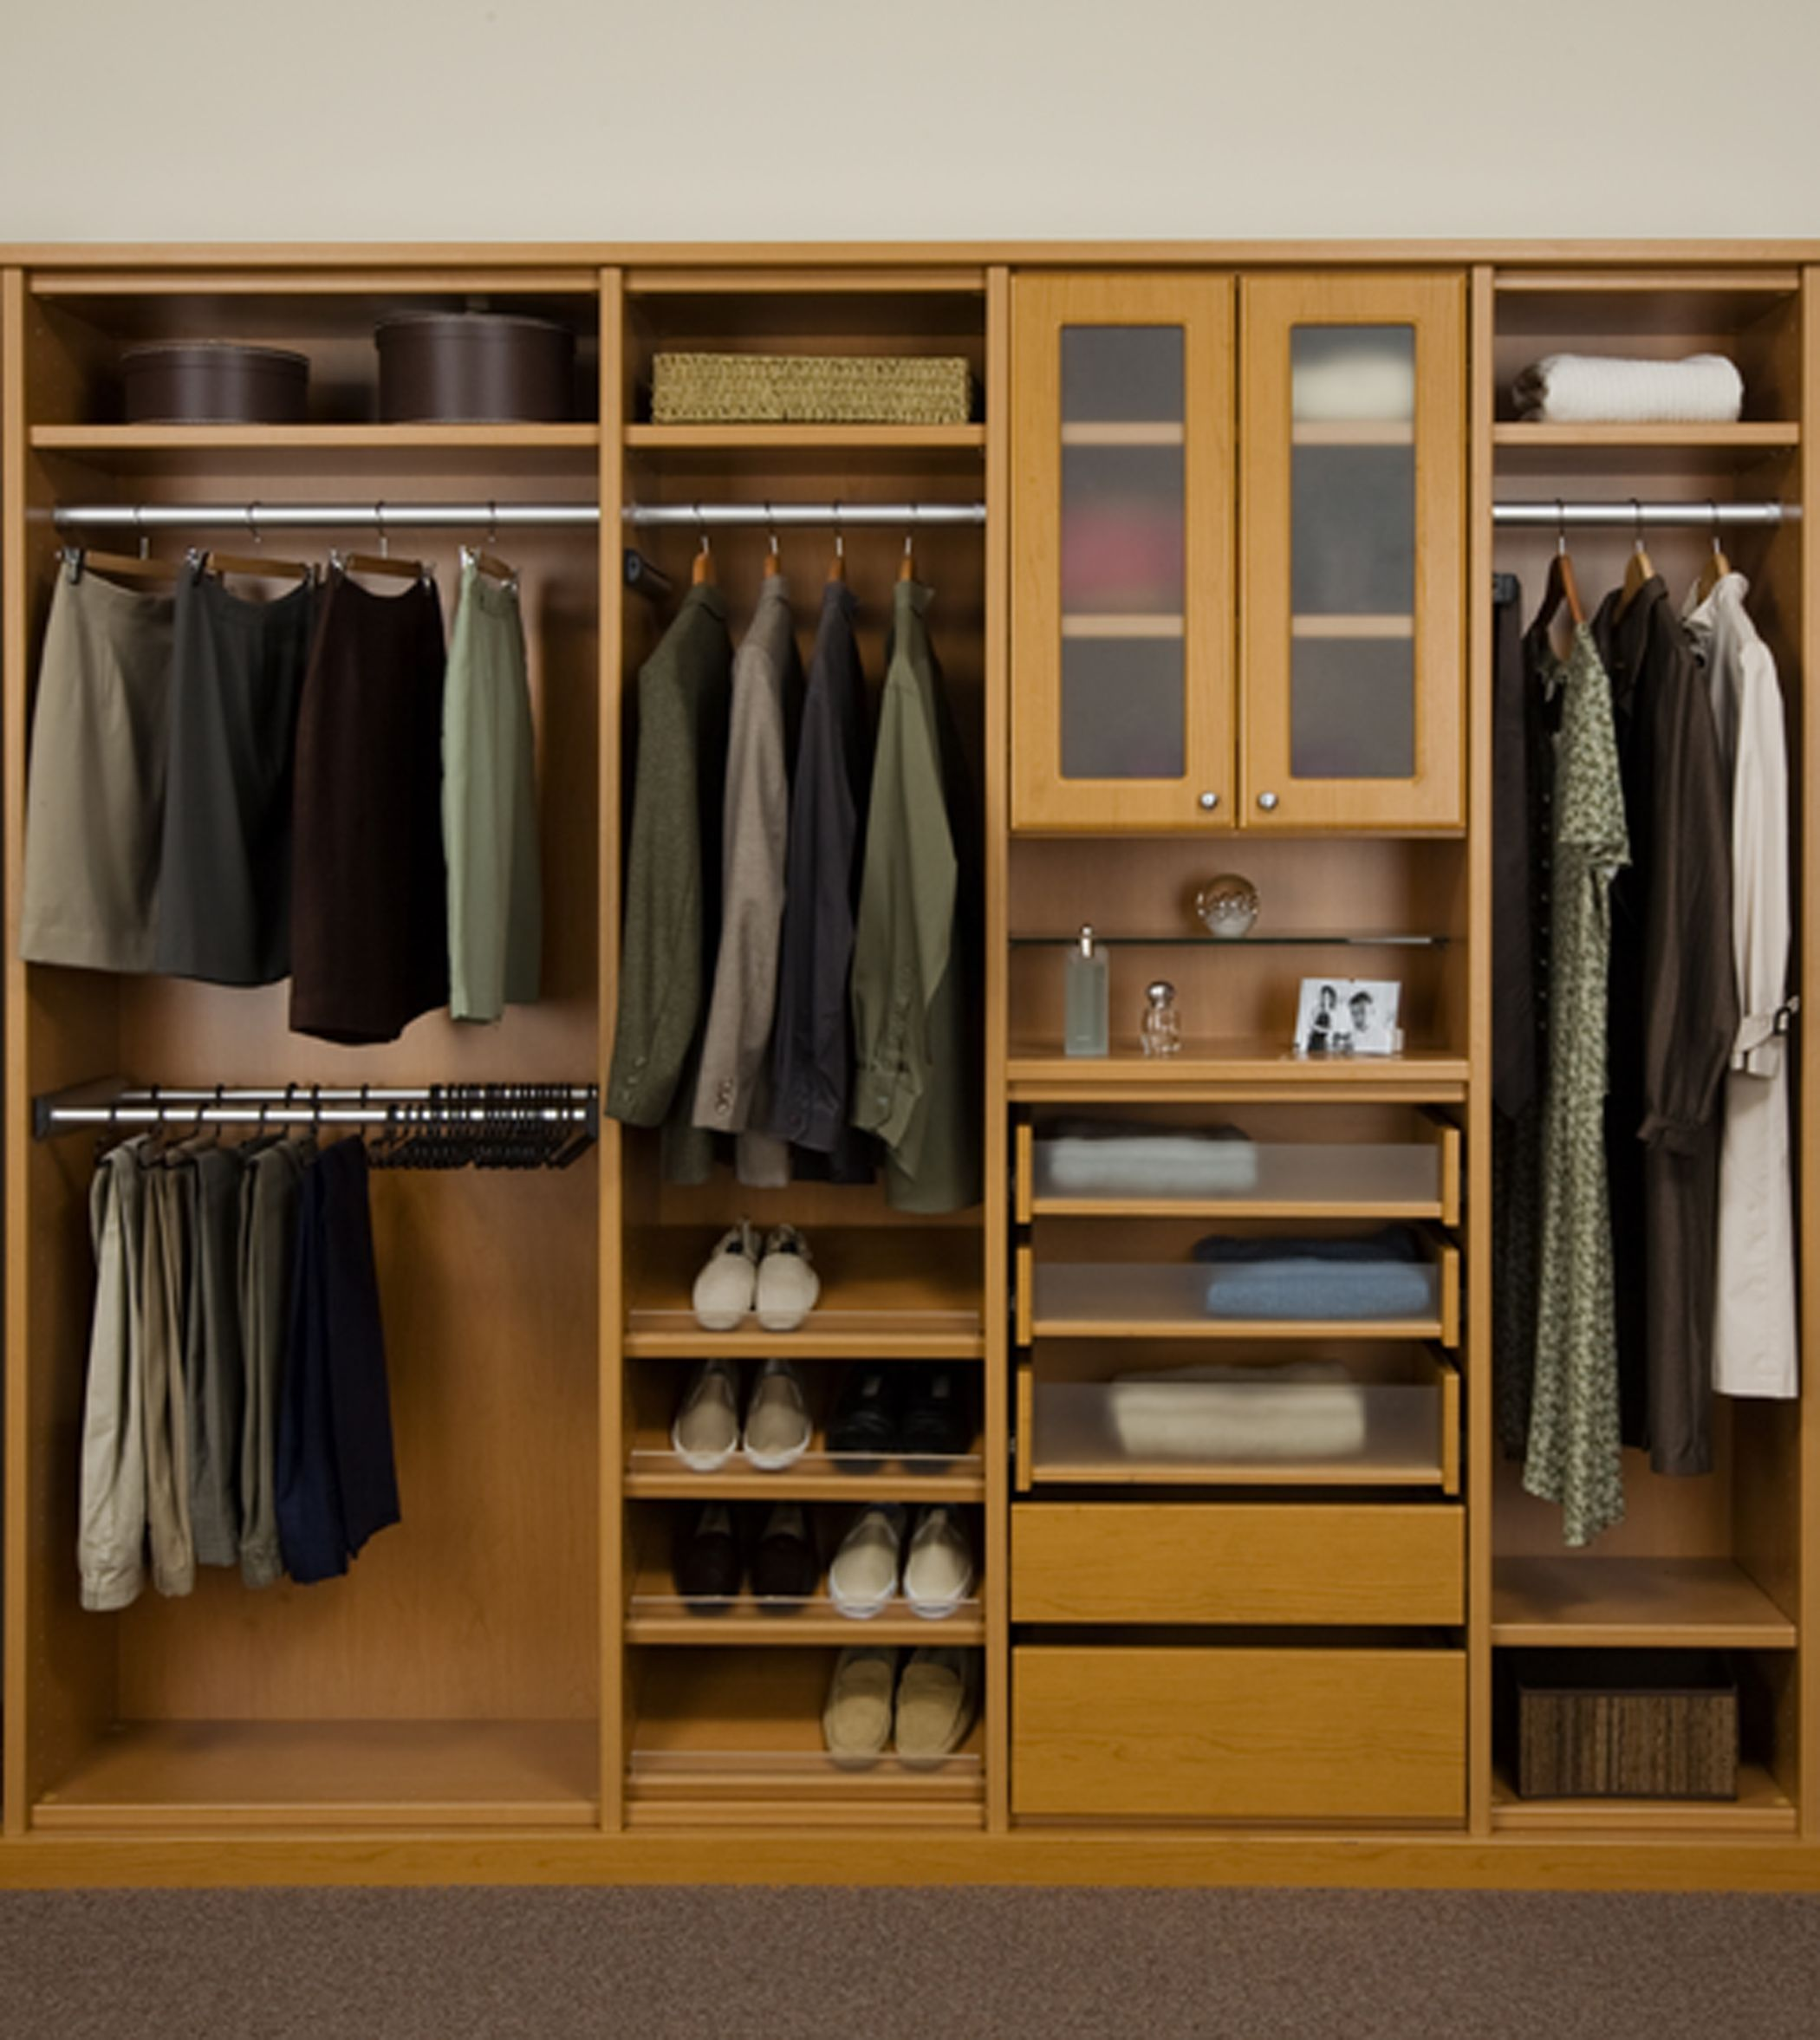 Simple small closet organization tips smart home decorating ideas - Closet Designs For Small Closets